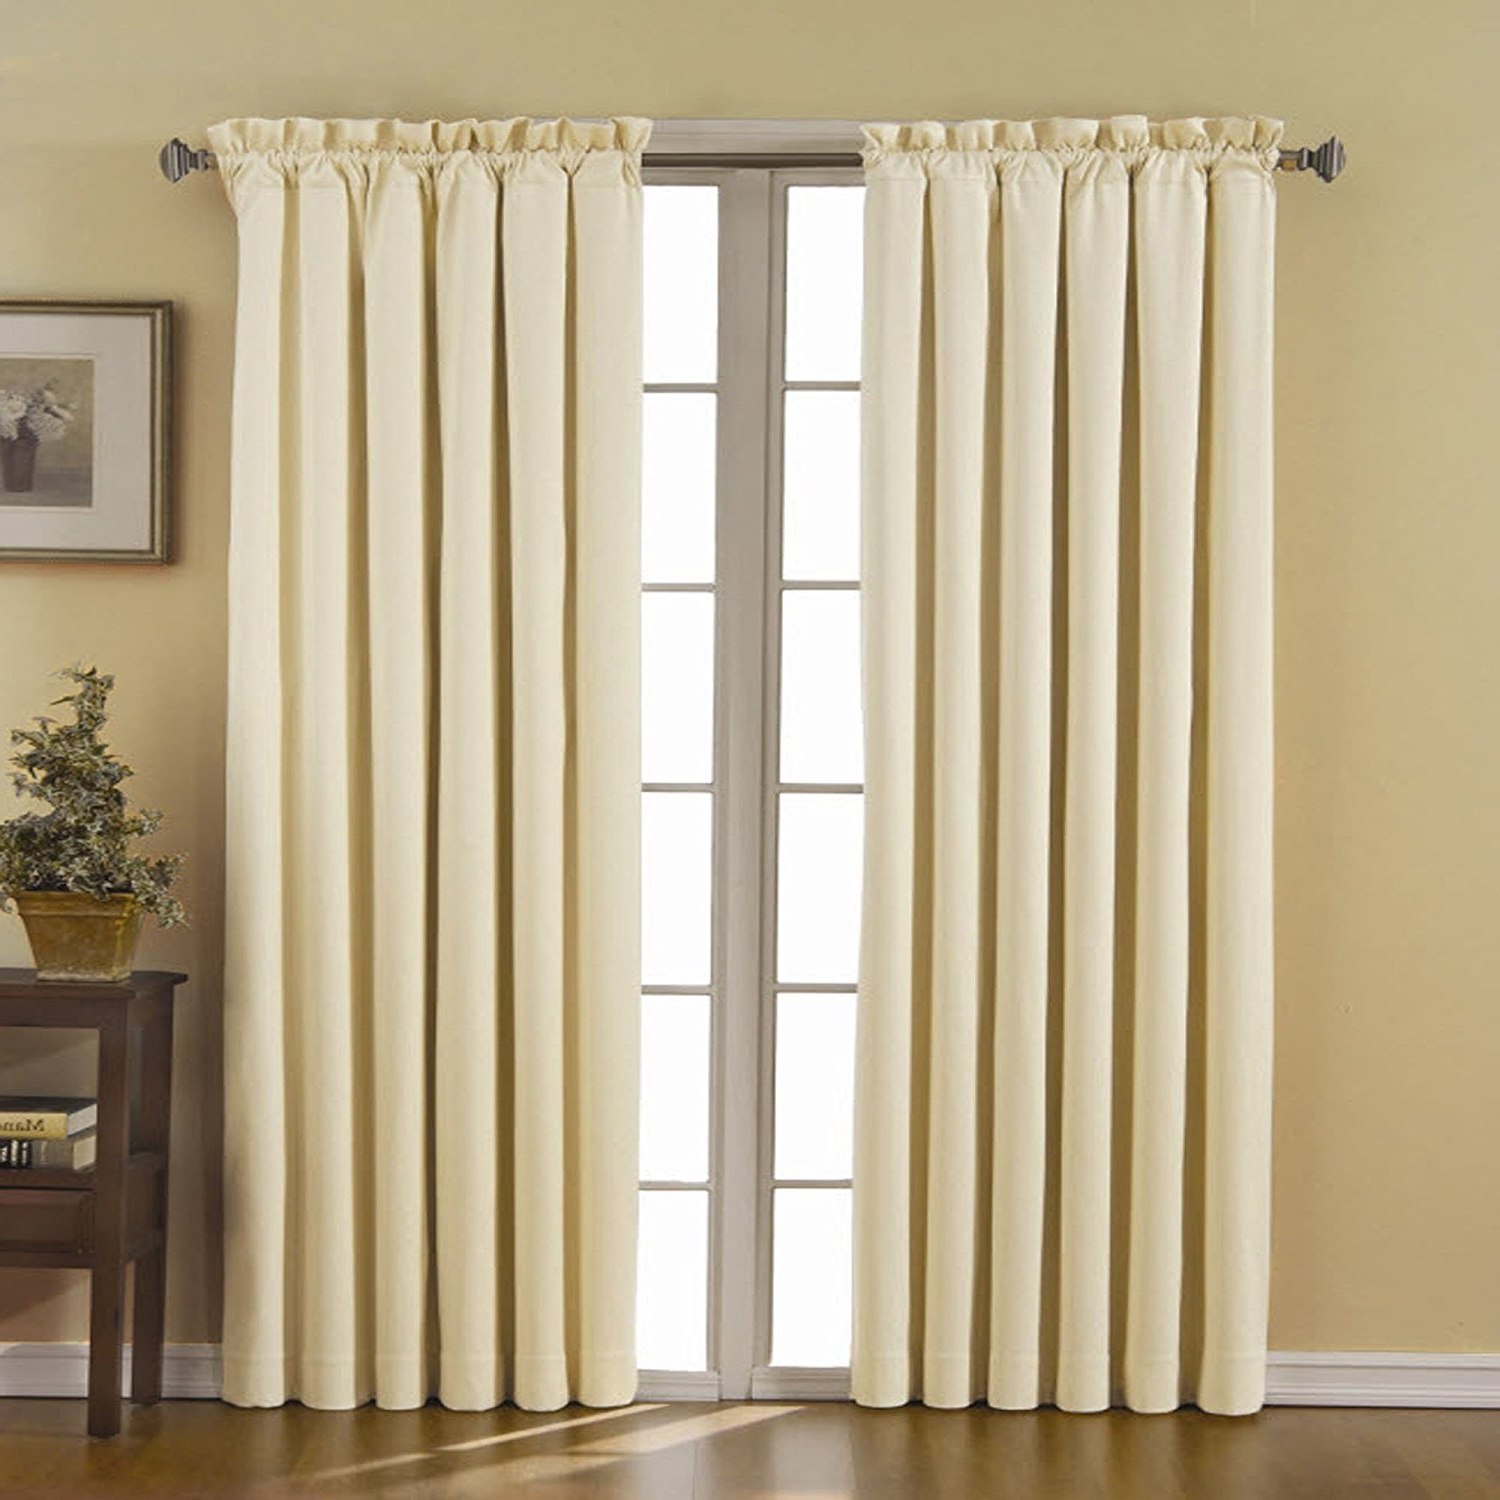 2020 Thermaback Blackout Window Curtains For Details About Eclipse Canova 42 Inch84 Inch Thermaback Blackout Panel, Ivory , New, Free S (View 7 of 20)